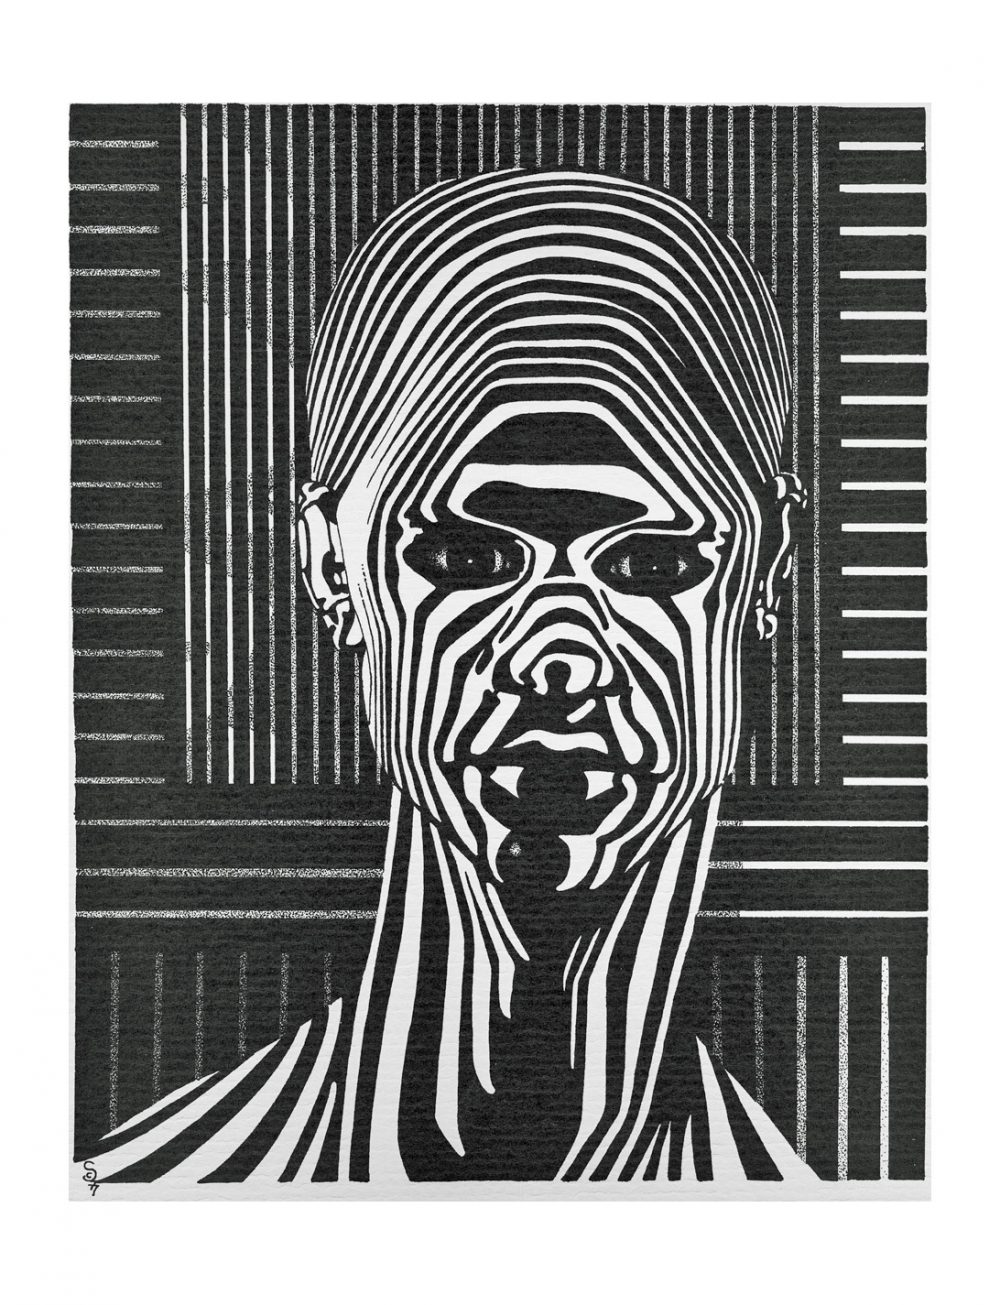 STRIPES is a pen & ink drawing portrait of a man shown in black & white stripes